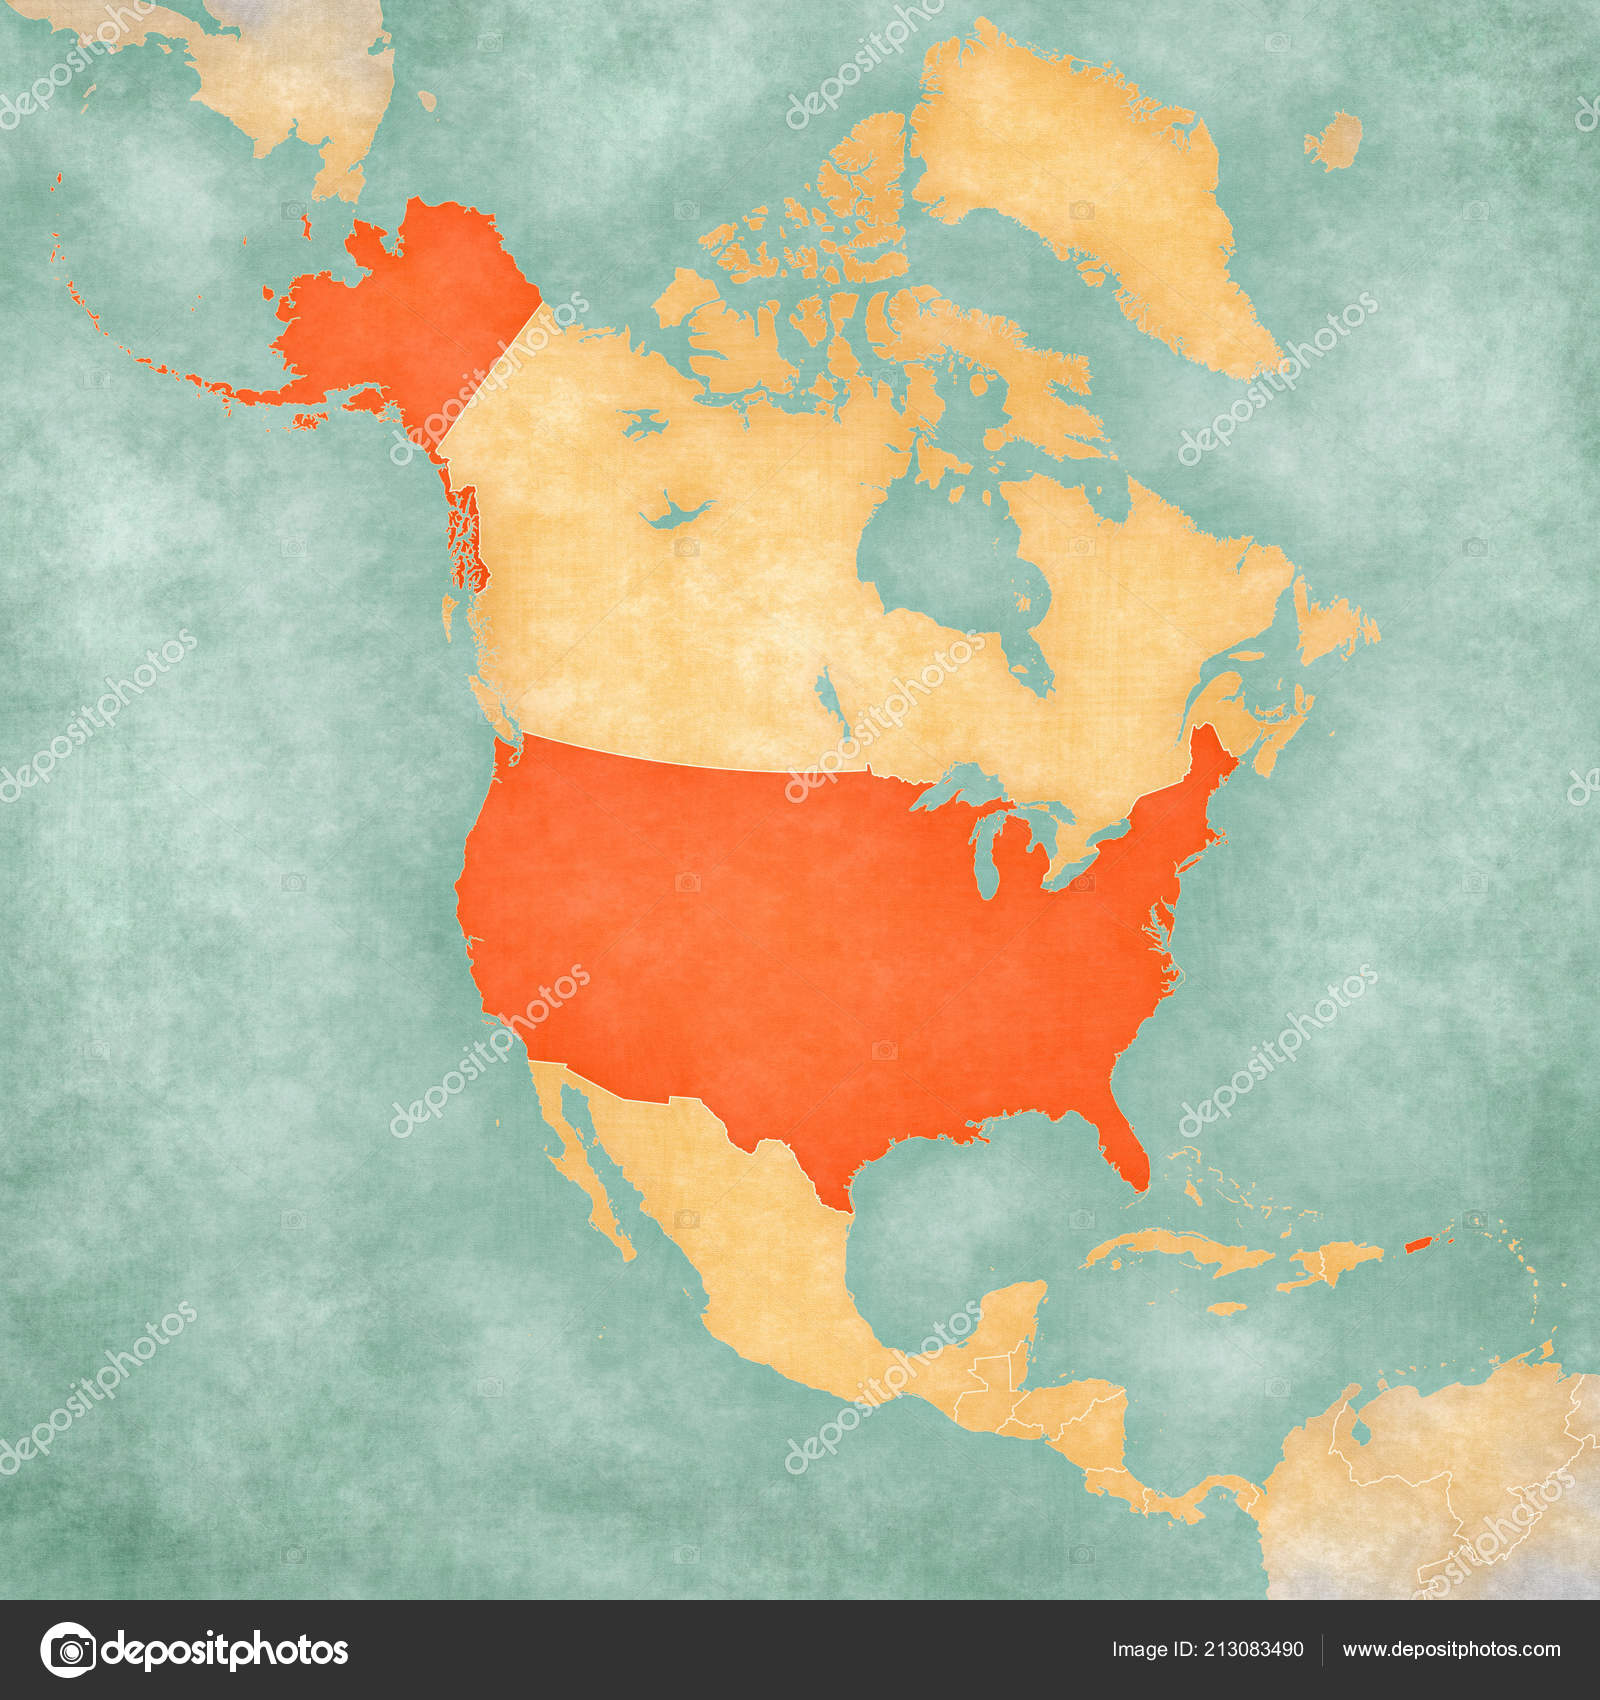 United States Map North America Soft Grunge Vintage Style ...